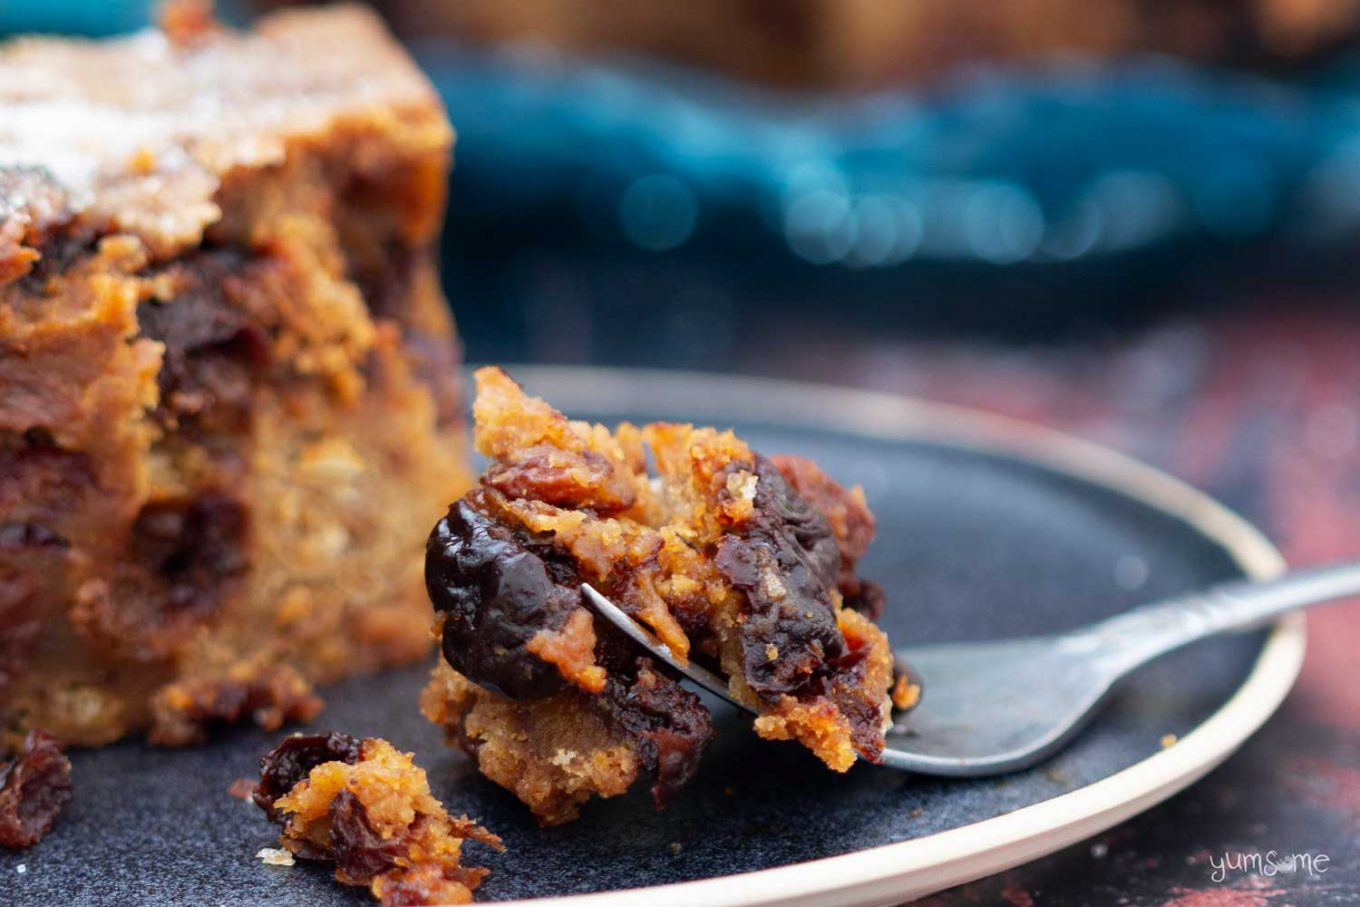 A forkful of festive bread pudding.